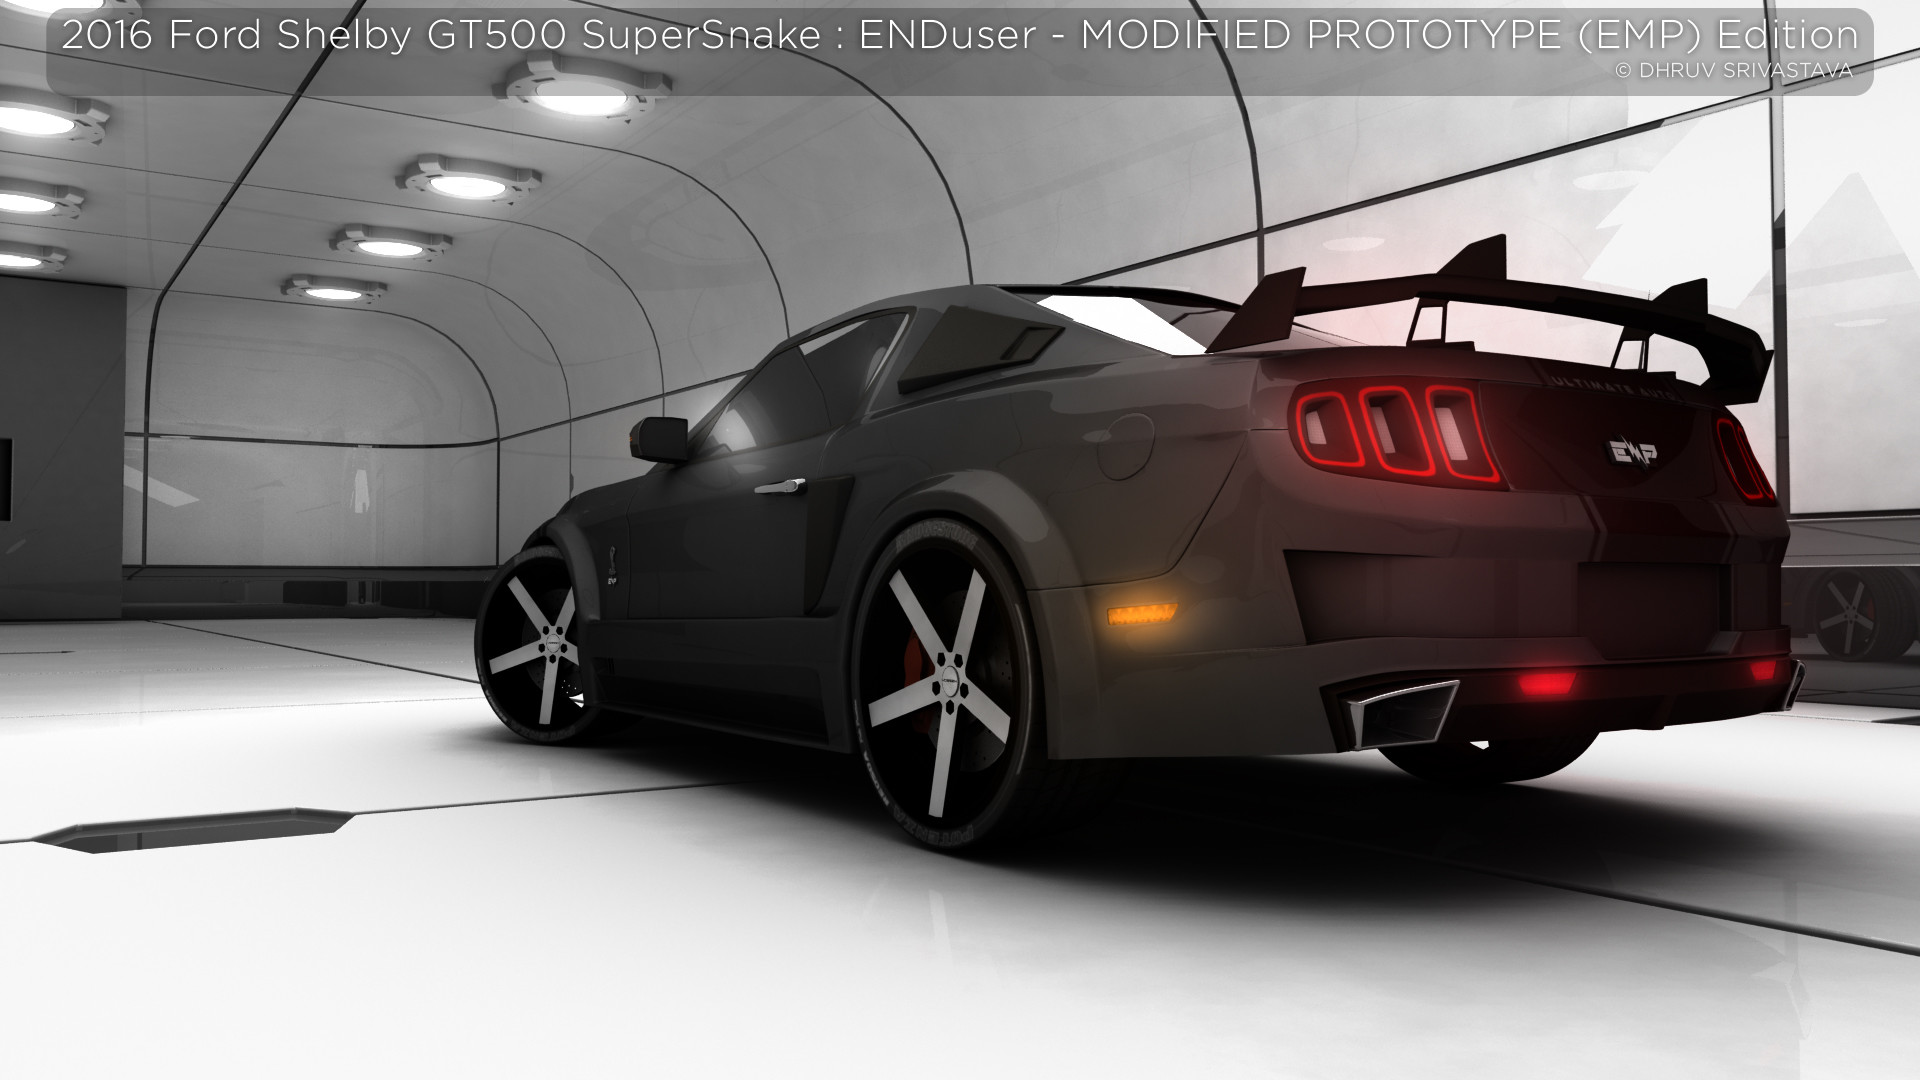 ArtStation 2016 Ford Shelby GT500 SuperSnake ENDuser MODIFIED